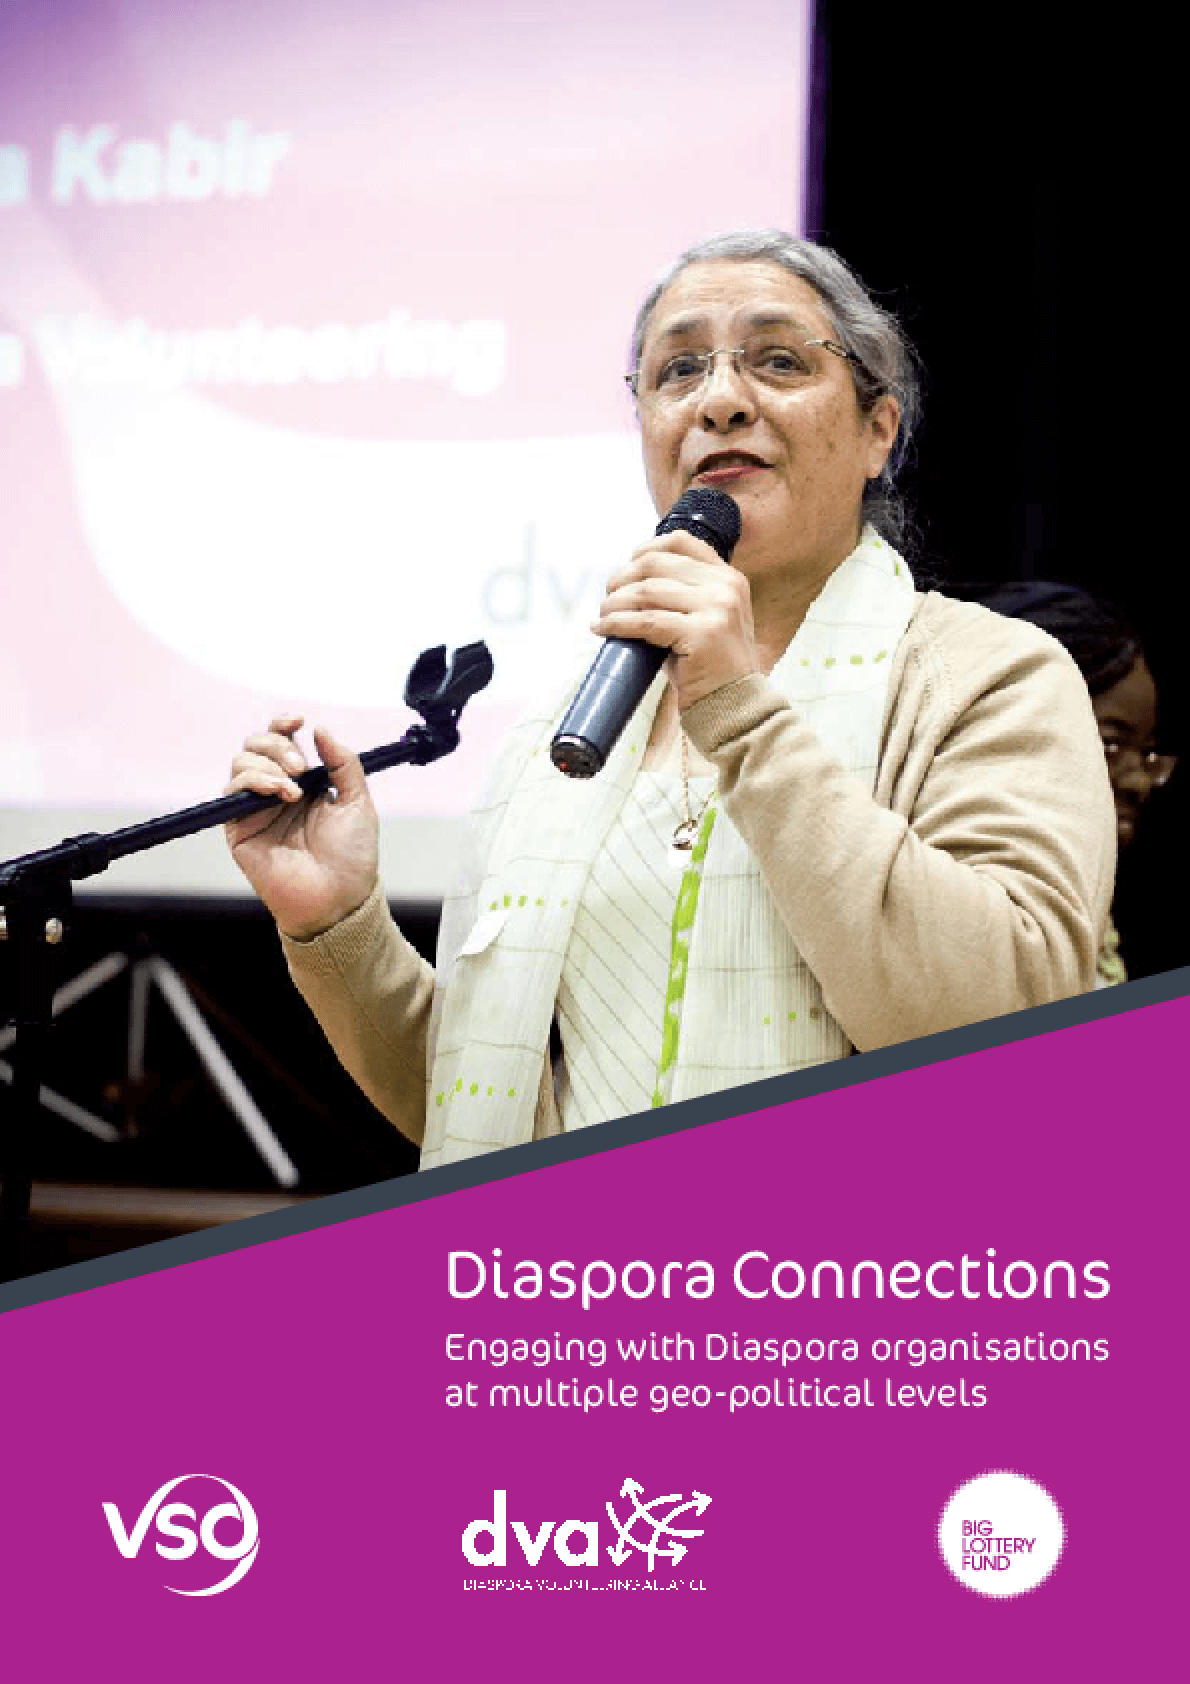 Diaspora Connections: Engaging with Diaspora Organisations at Multiple Geo-political Levels